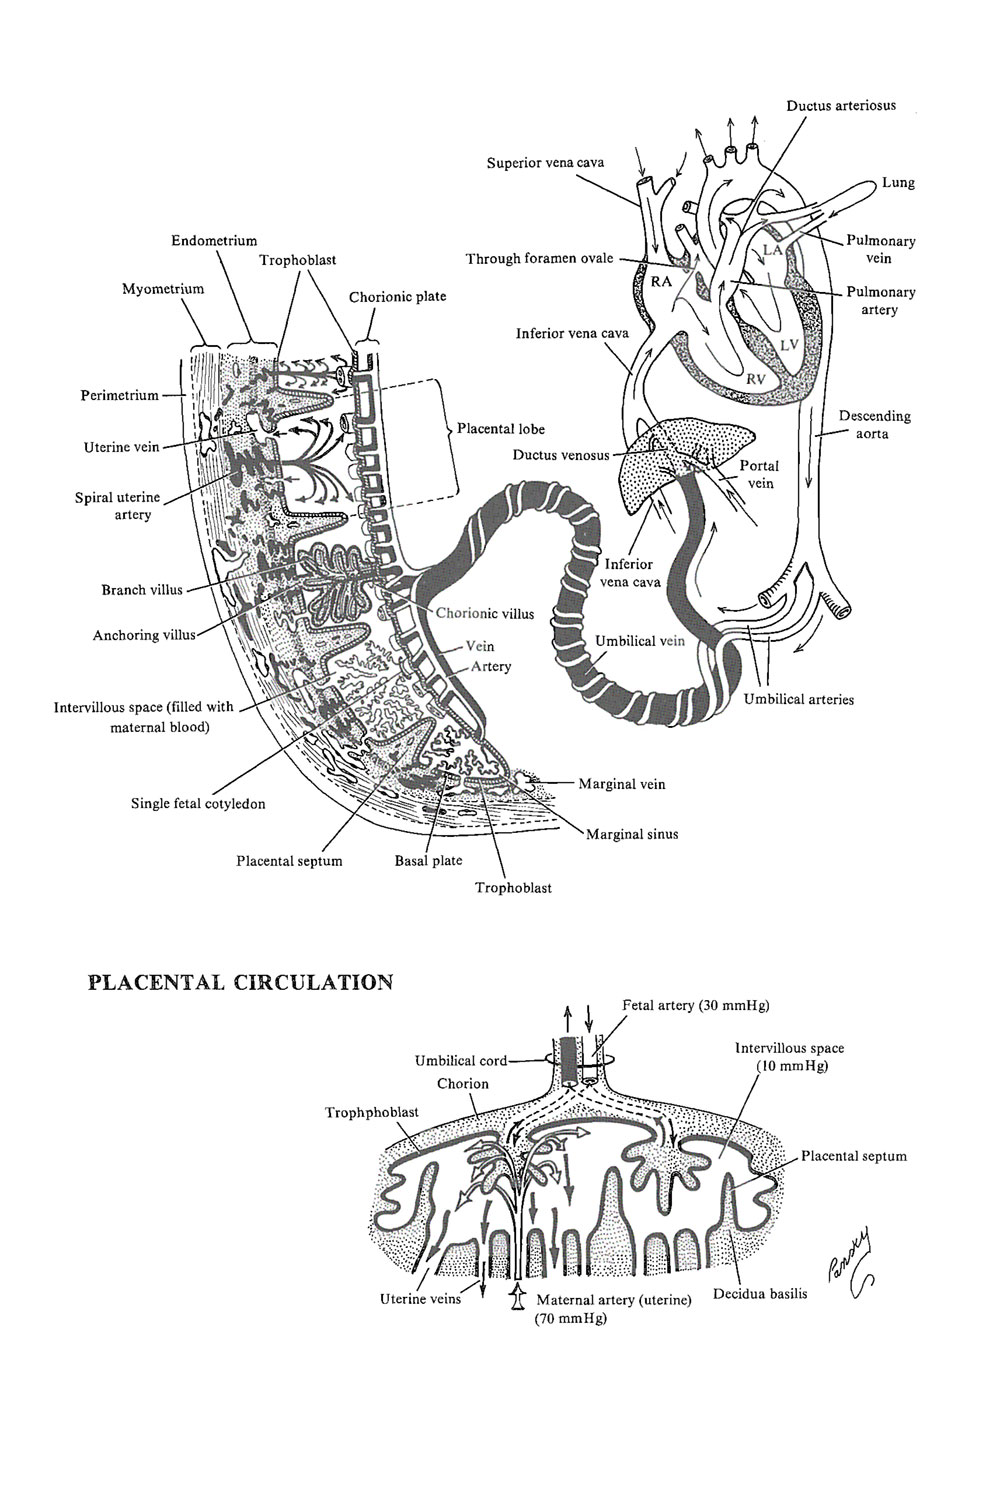 placental circulation: image #1